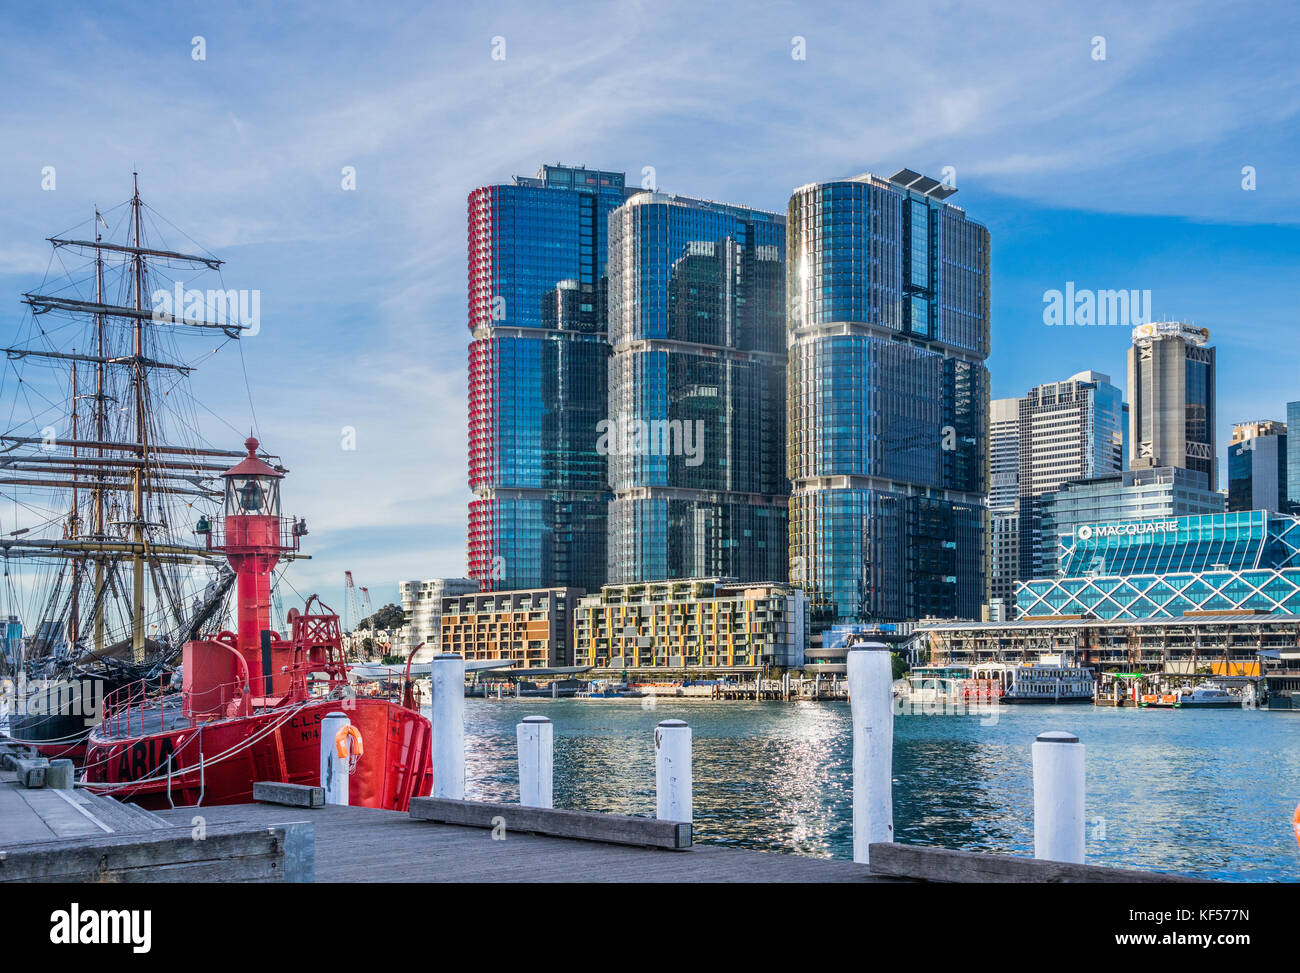 Australia, New South Wales, Sydney, Darling Harbour, view of the Barangaroo International Towers skyscrapers from - Stock Image